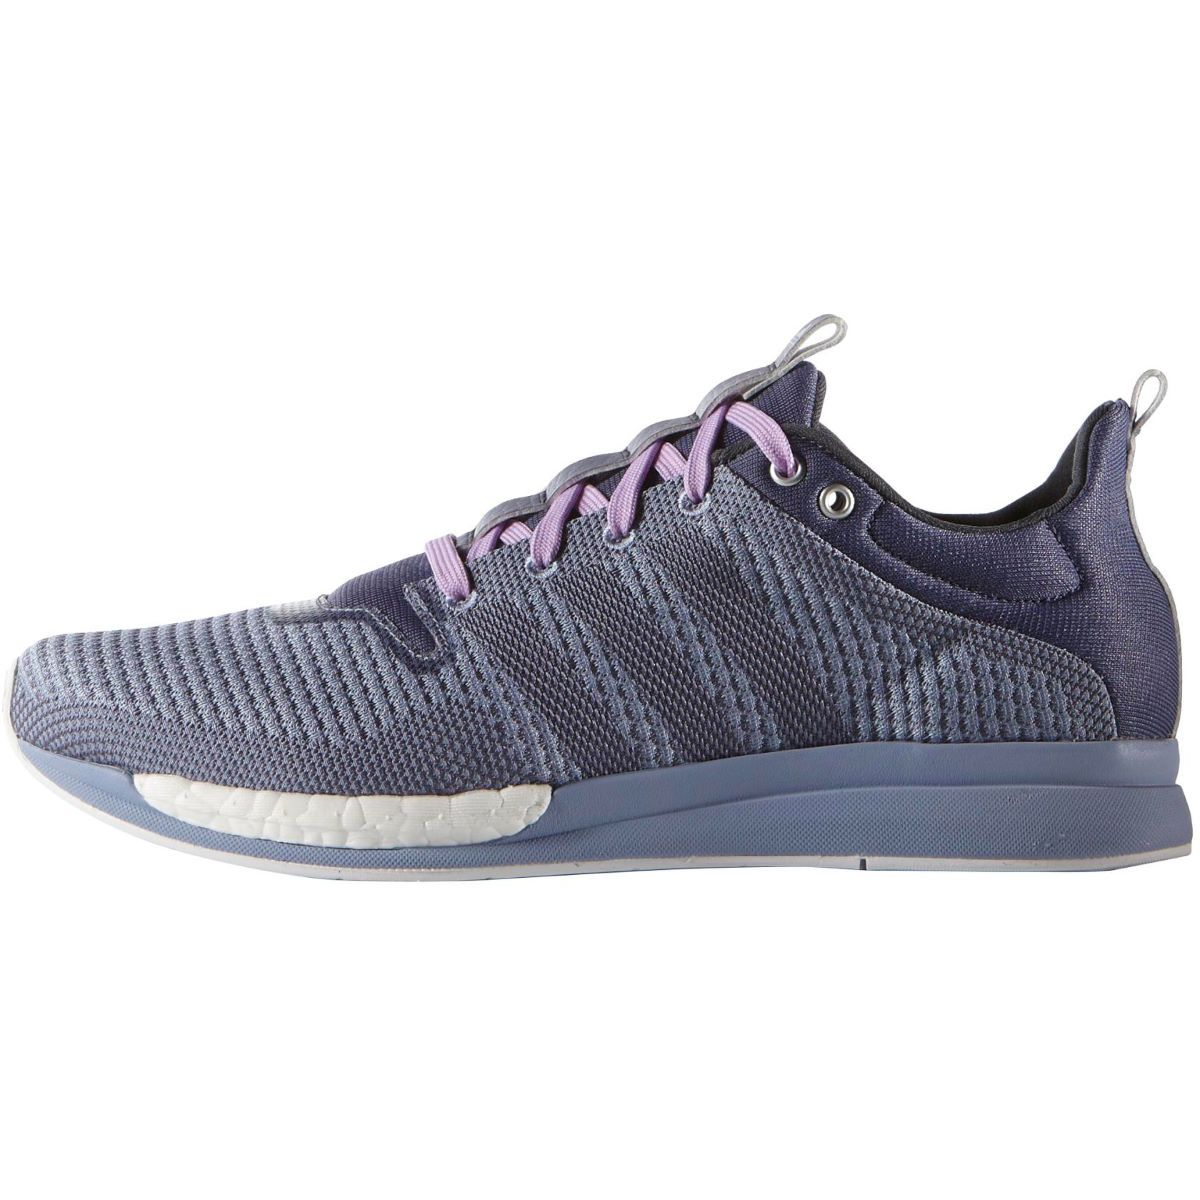 Adidas Women's Adizero Feather Boost Shoes (SS16